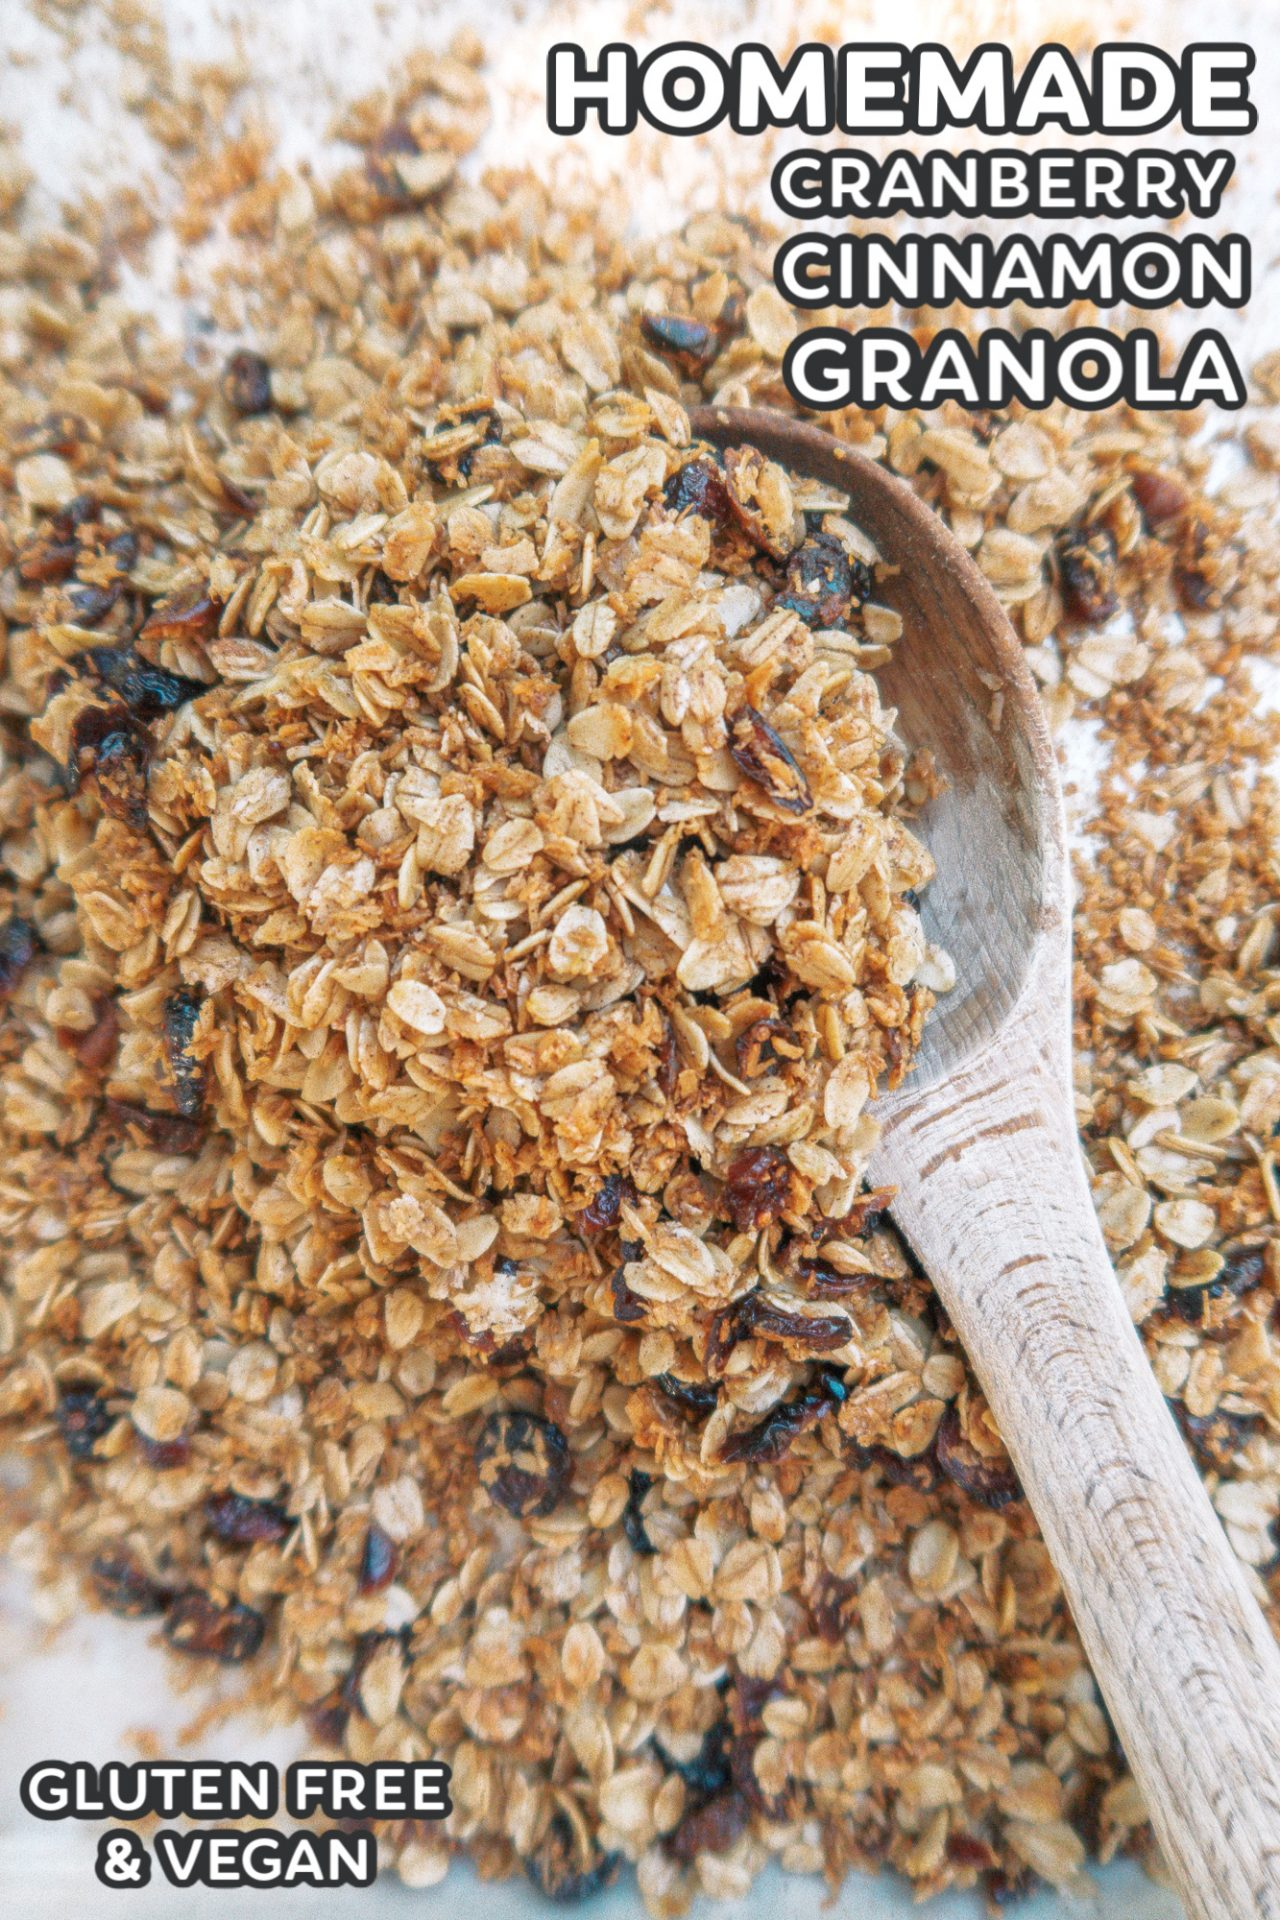 healthy granola, healthy homemade granola , homemade granola, gluten free, dairy free, vegan, healthy snacking, oatmeal, cranberry, cinnamon, no processed sugar, healthier, whole food